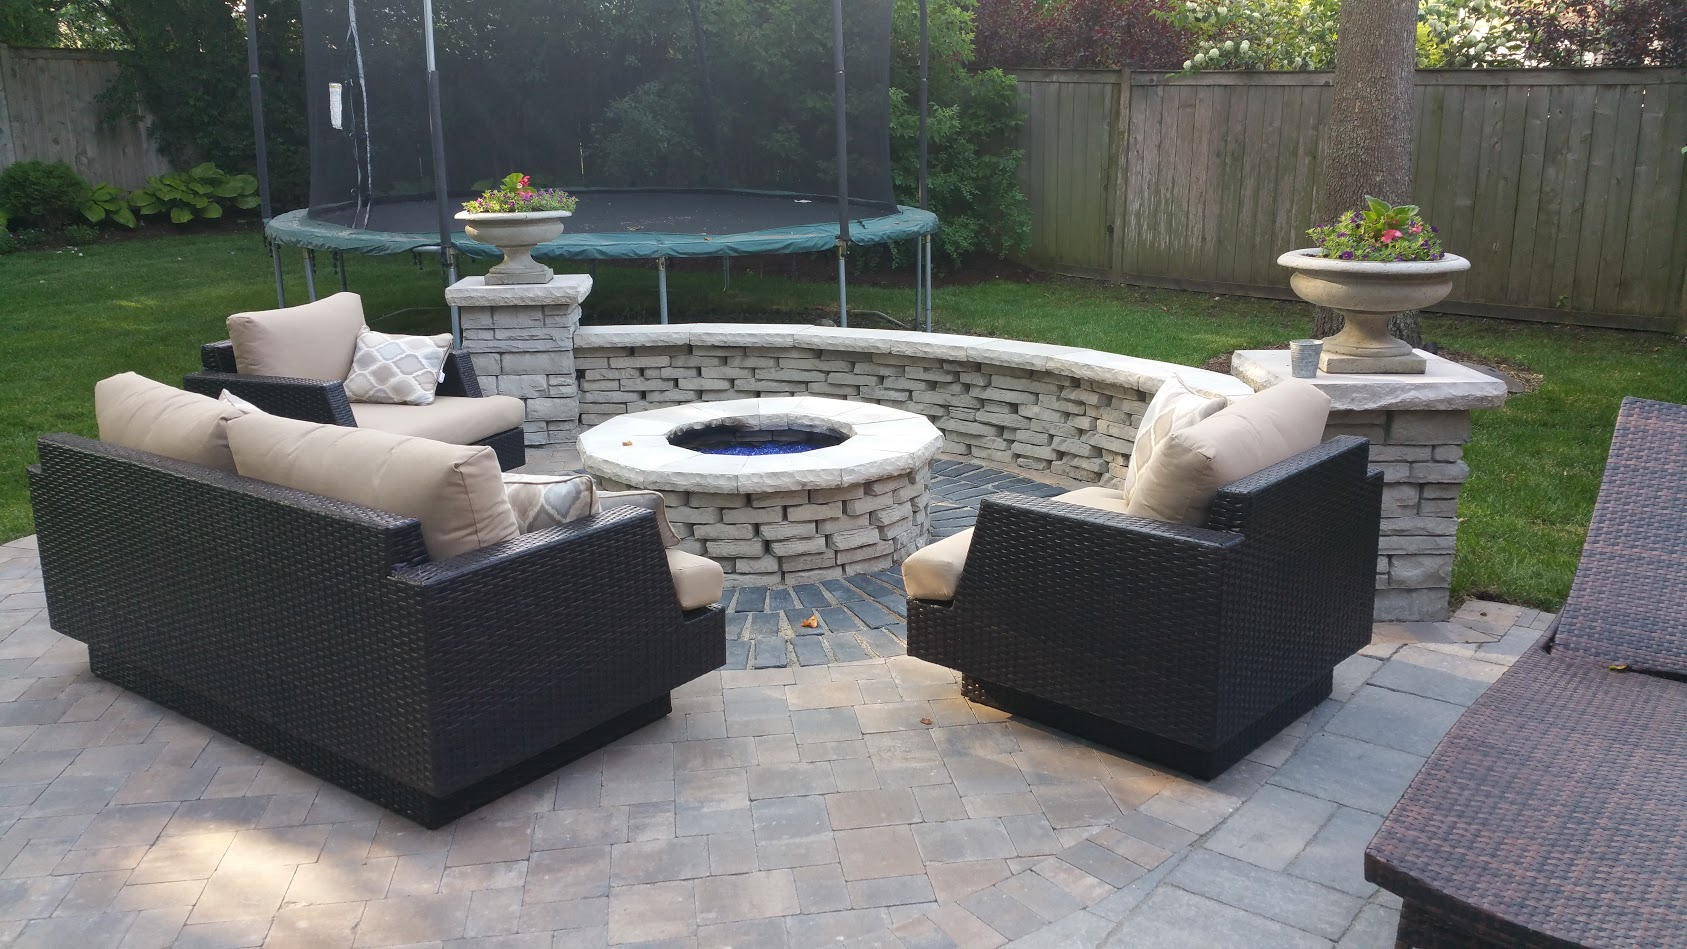 Outdoor fireplace landscape design by Unilock contractor in Northbrook, Glenview, Buffalo Grove, IL